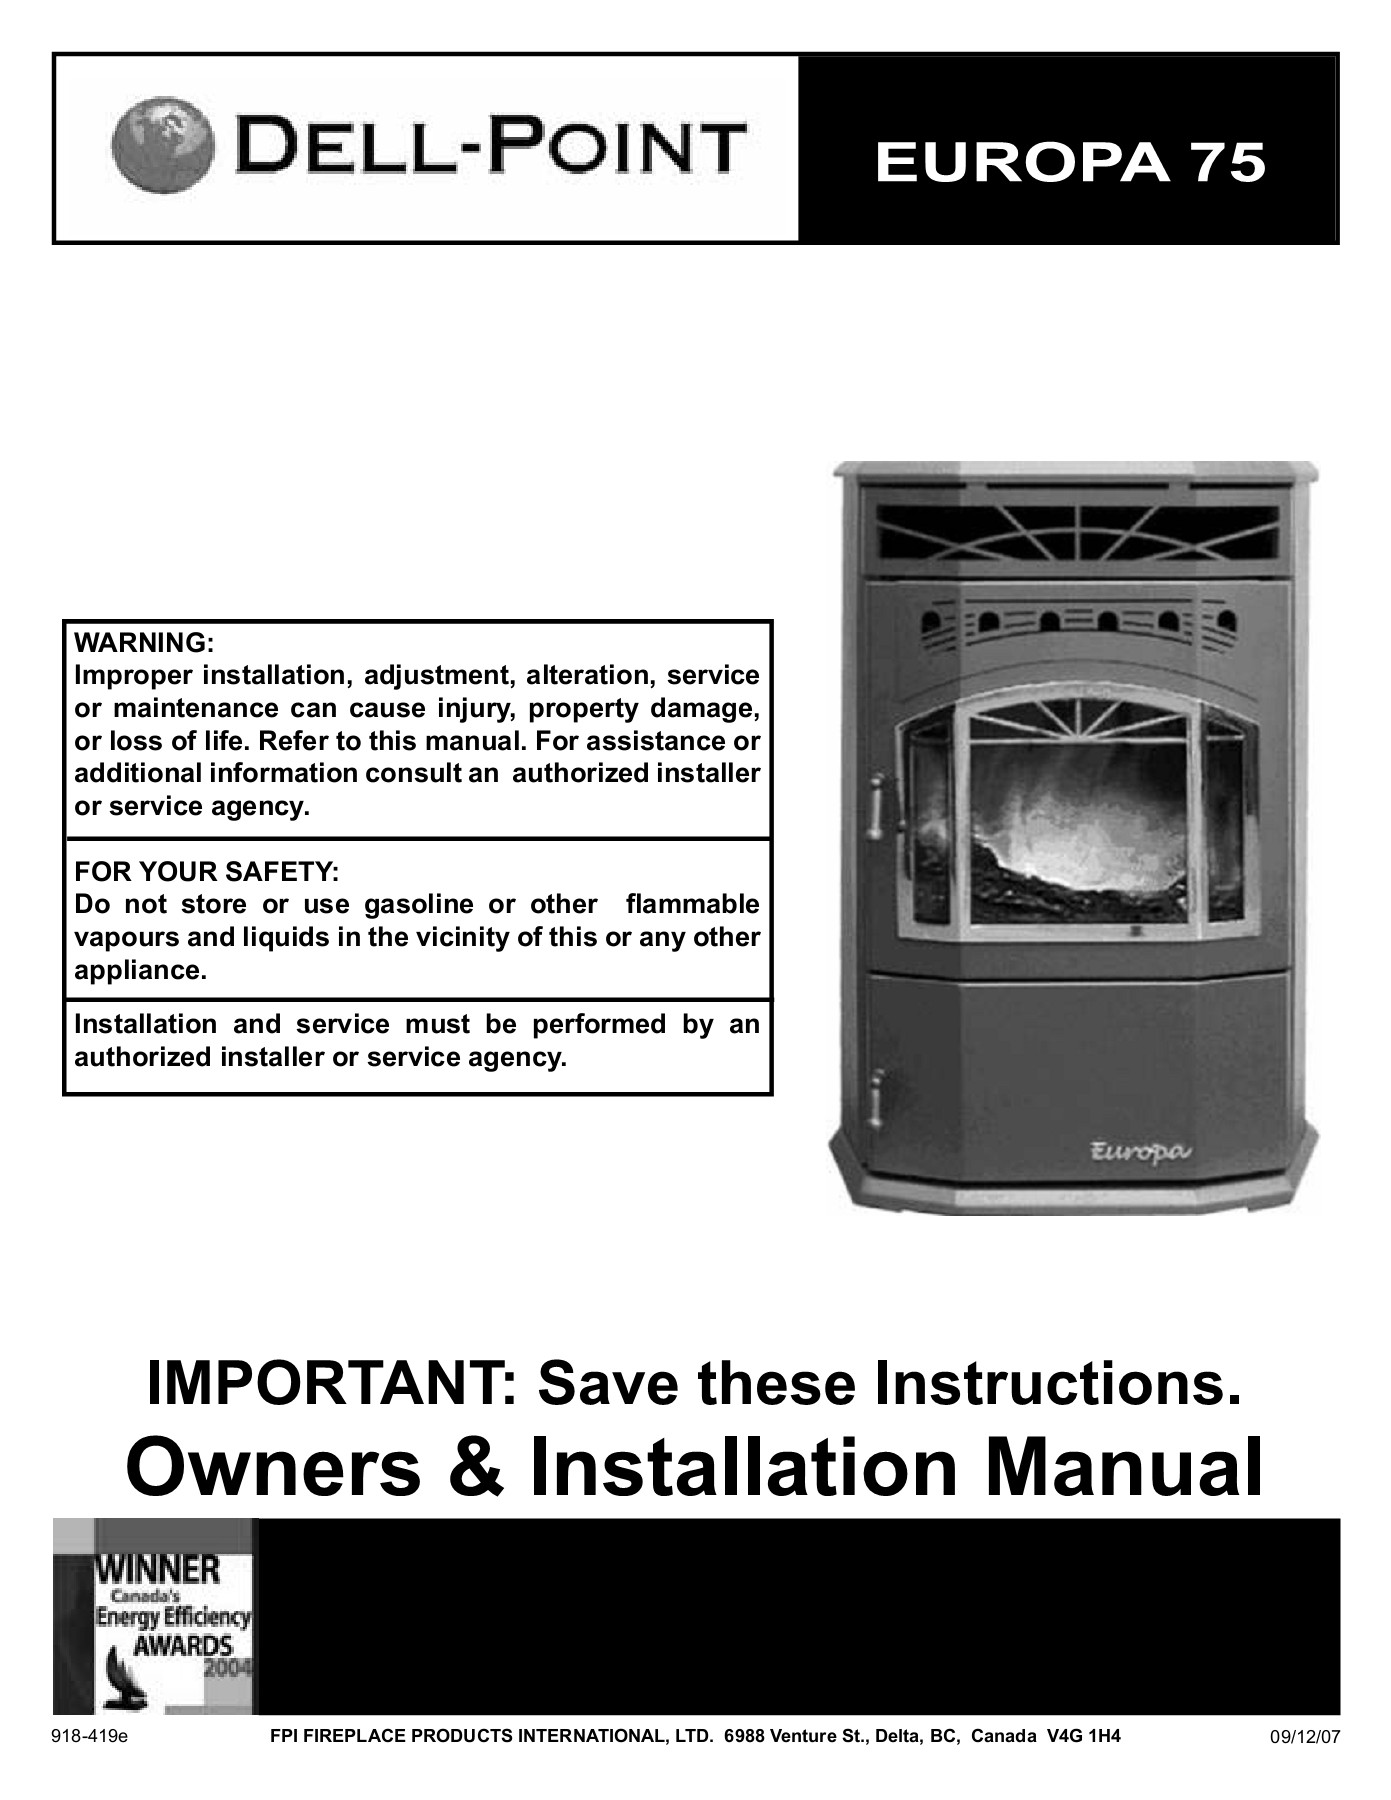 Difference Poele A Bois Et Insert owners & installation manual - regency fire pages 1 - 28